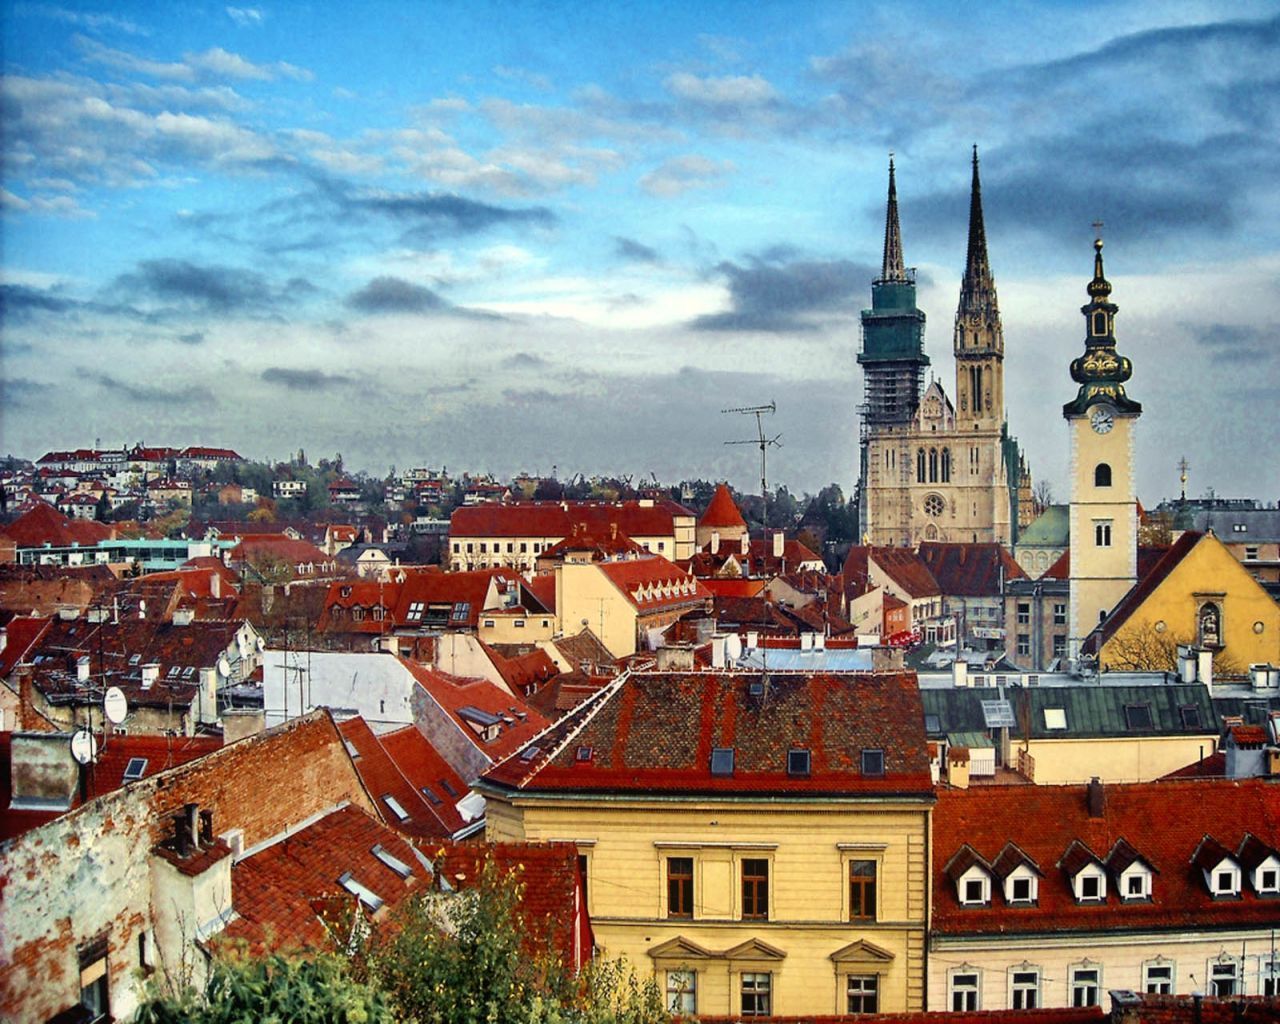 zagreb croatia tourism wallpapers | Travel pictures and Travel guides